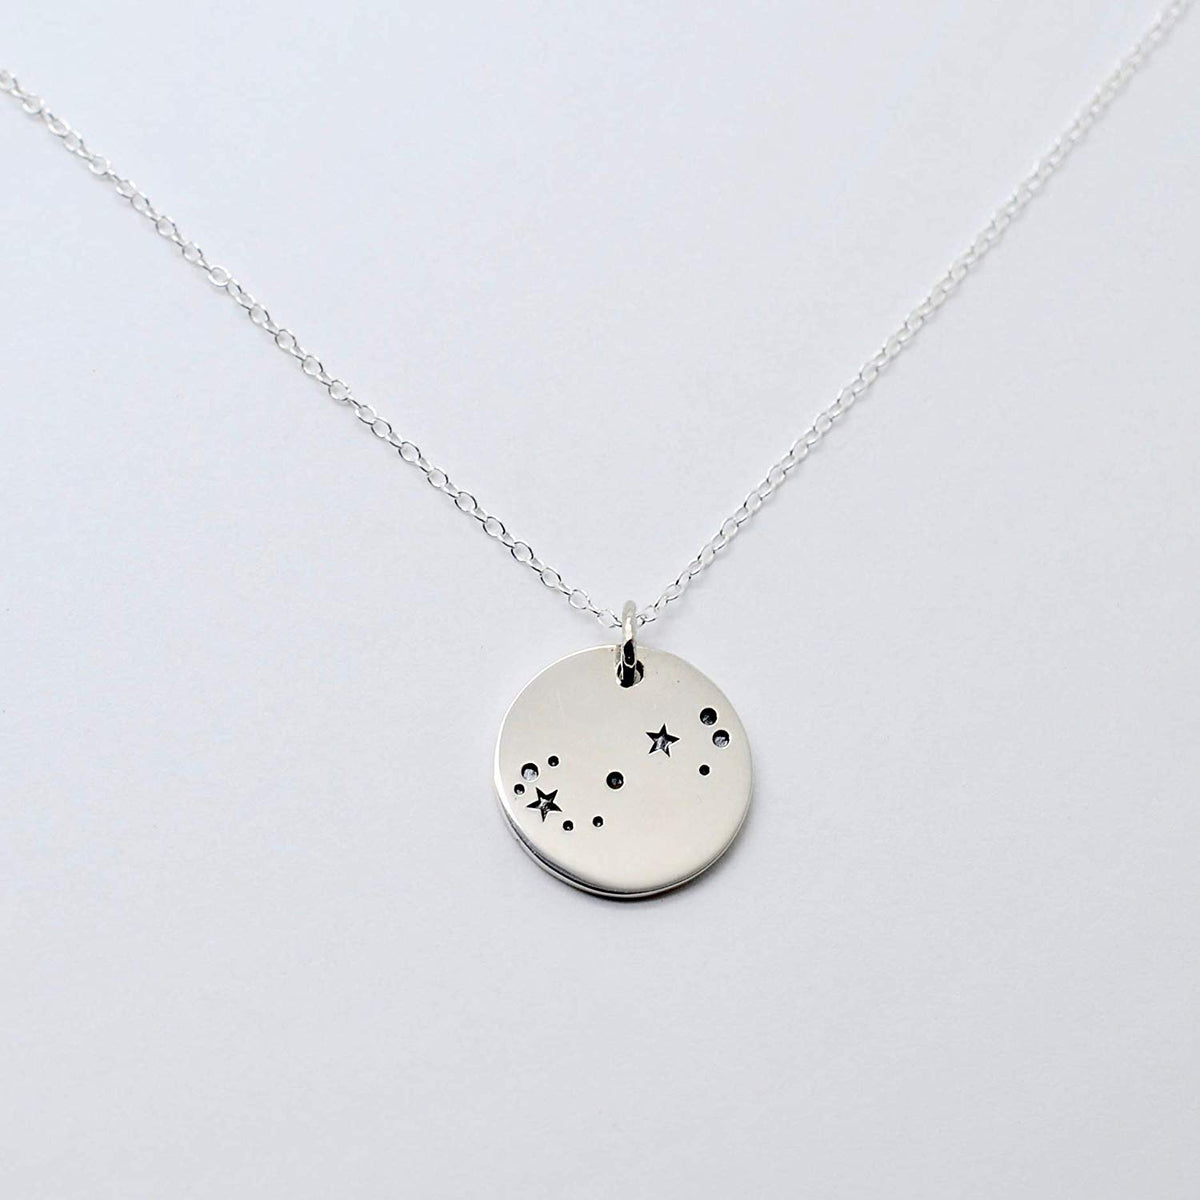 Scorpio Zodiac Sign Sterling Silver Constellation Necklace - Love It Personalized